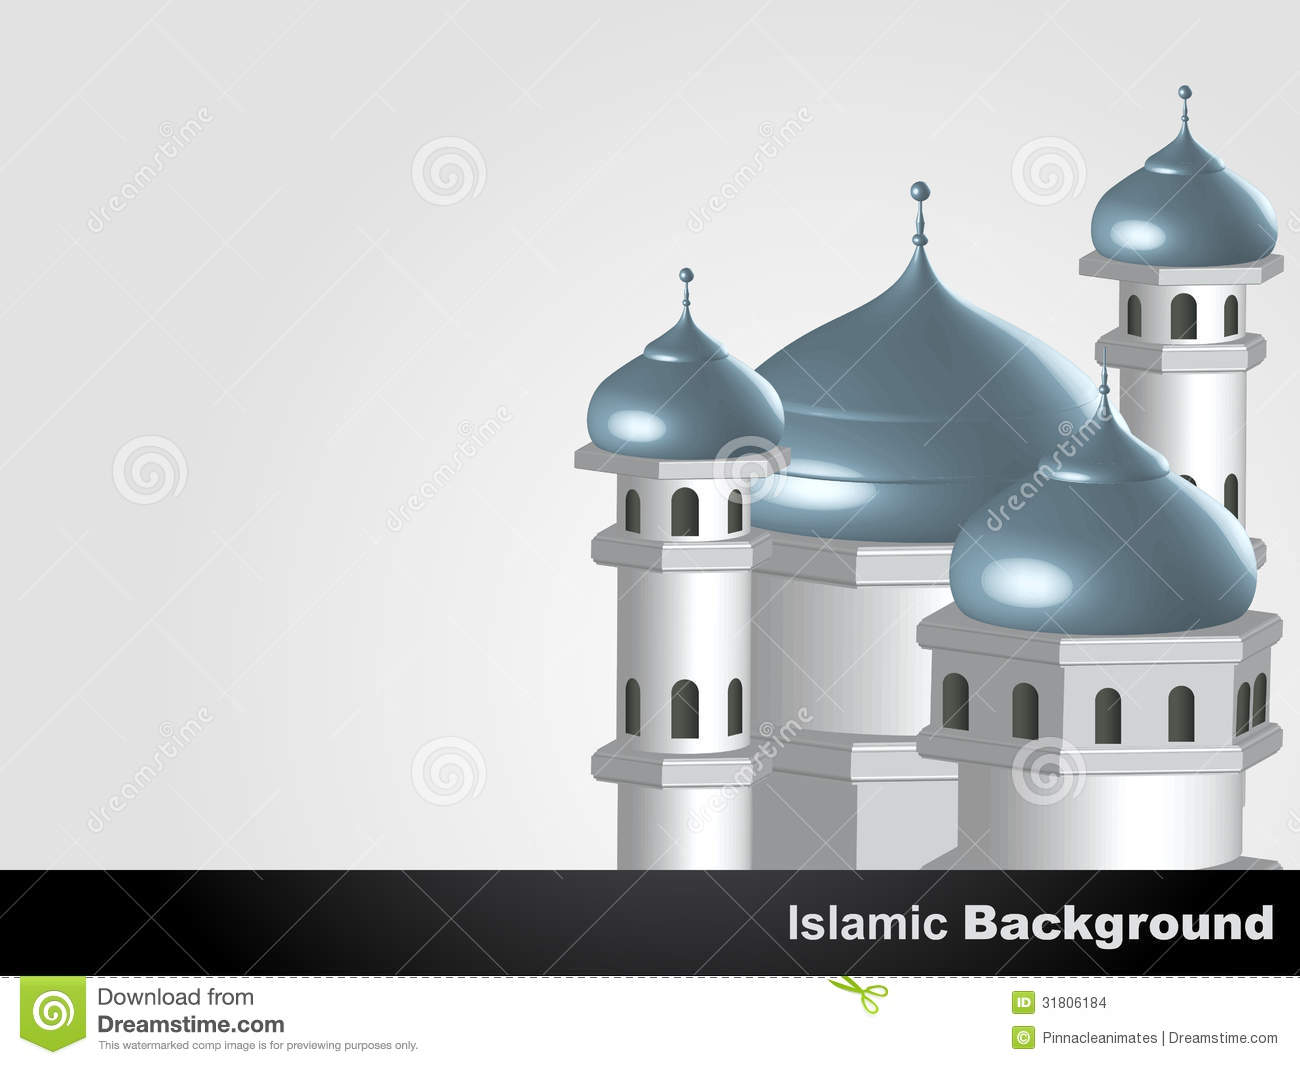 Islamic Mosque Background Stock Images - Image: 31806184